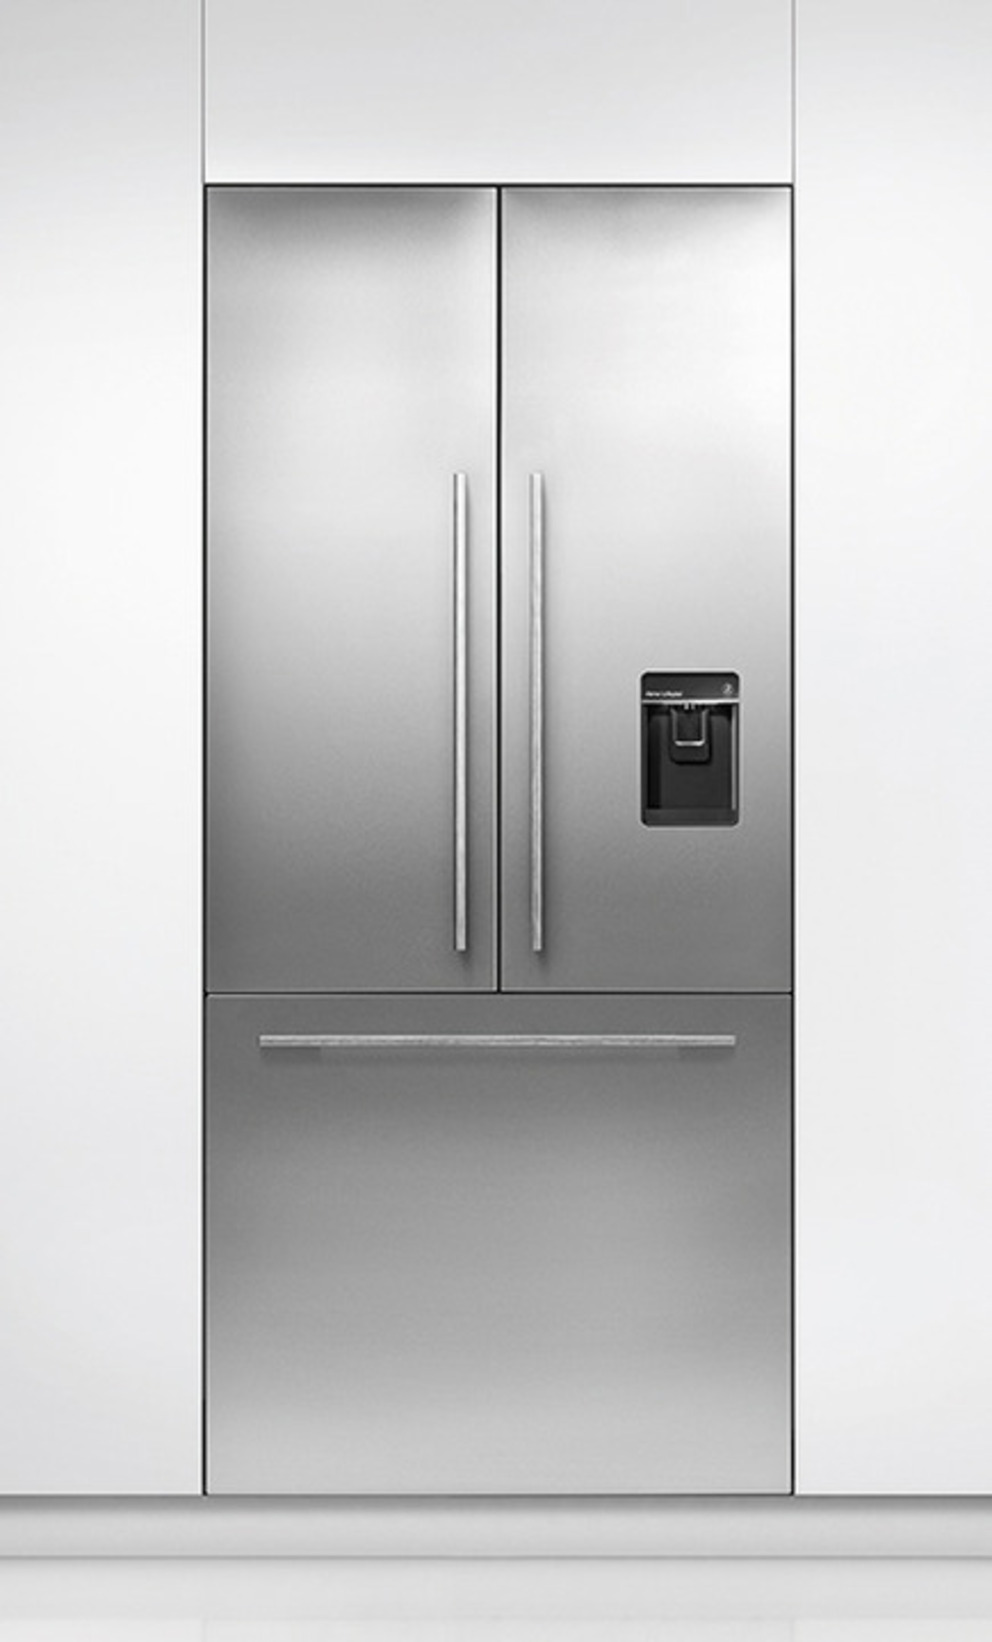 Réfrigérateurs Fisher&Paykel RS36A80U1 + RD3684U (84'' F&P)